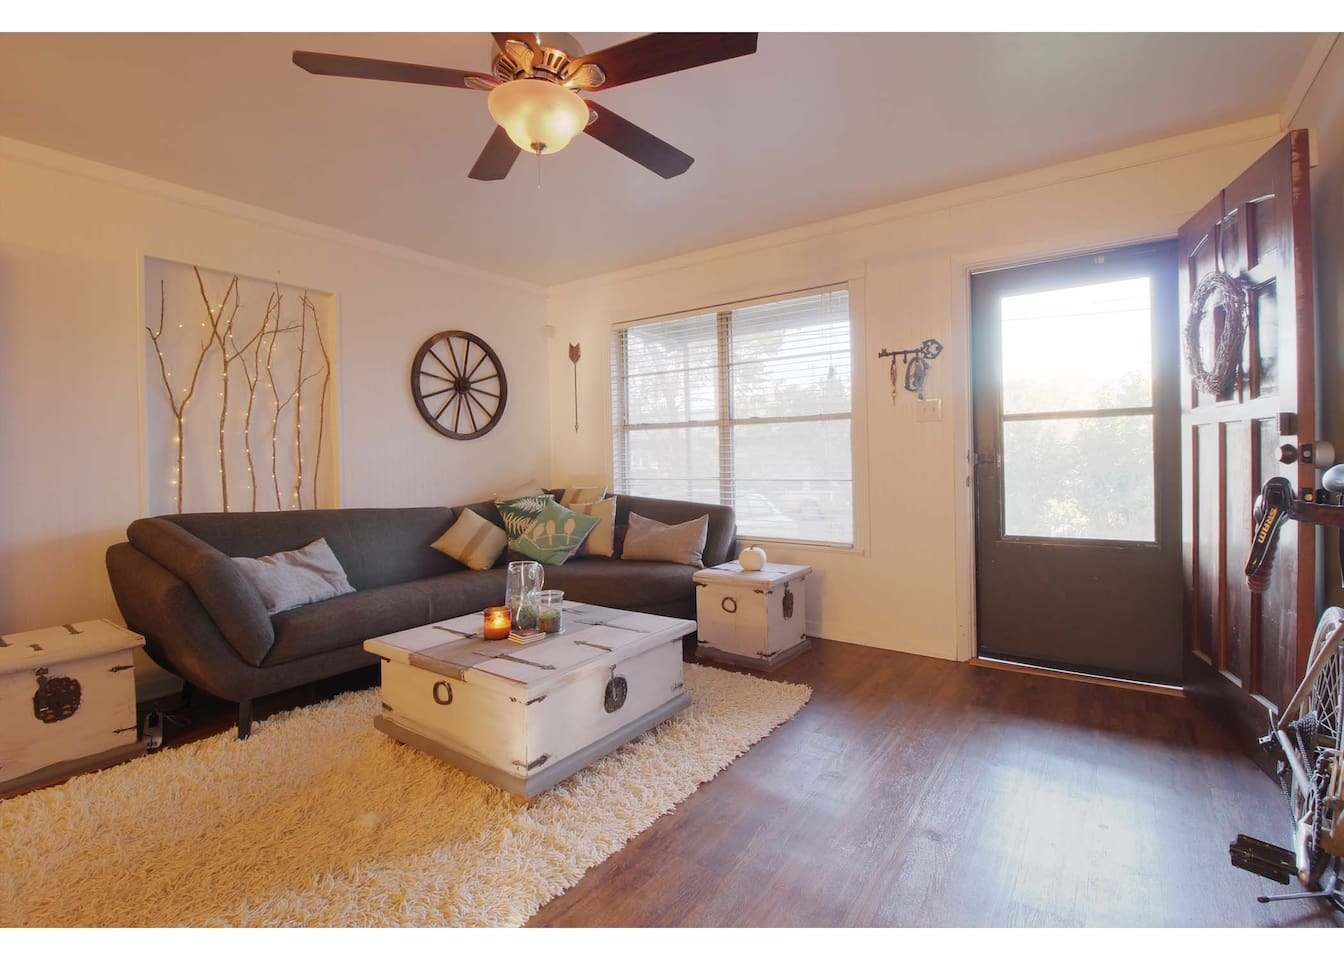 comfy shabby chic-style living room with romantic twinkle lights, flat screen, and large, pillow covered couch for everyone to enjoy!